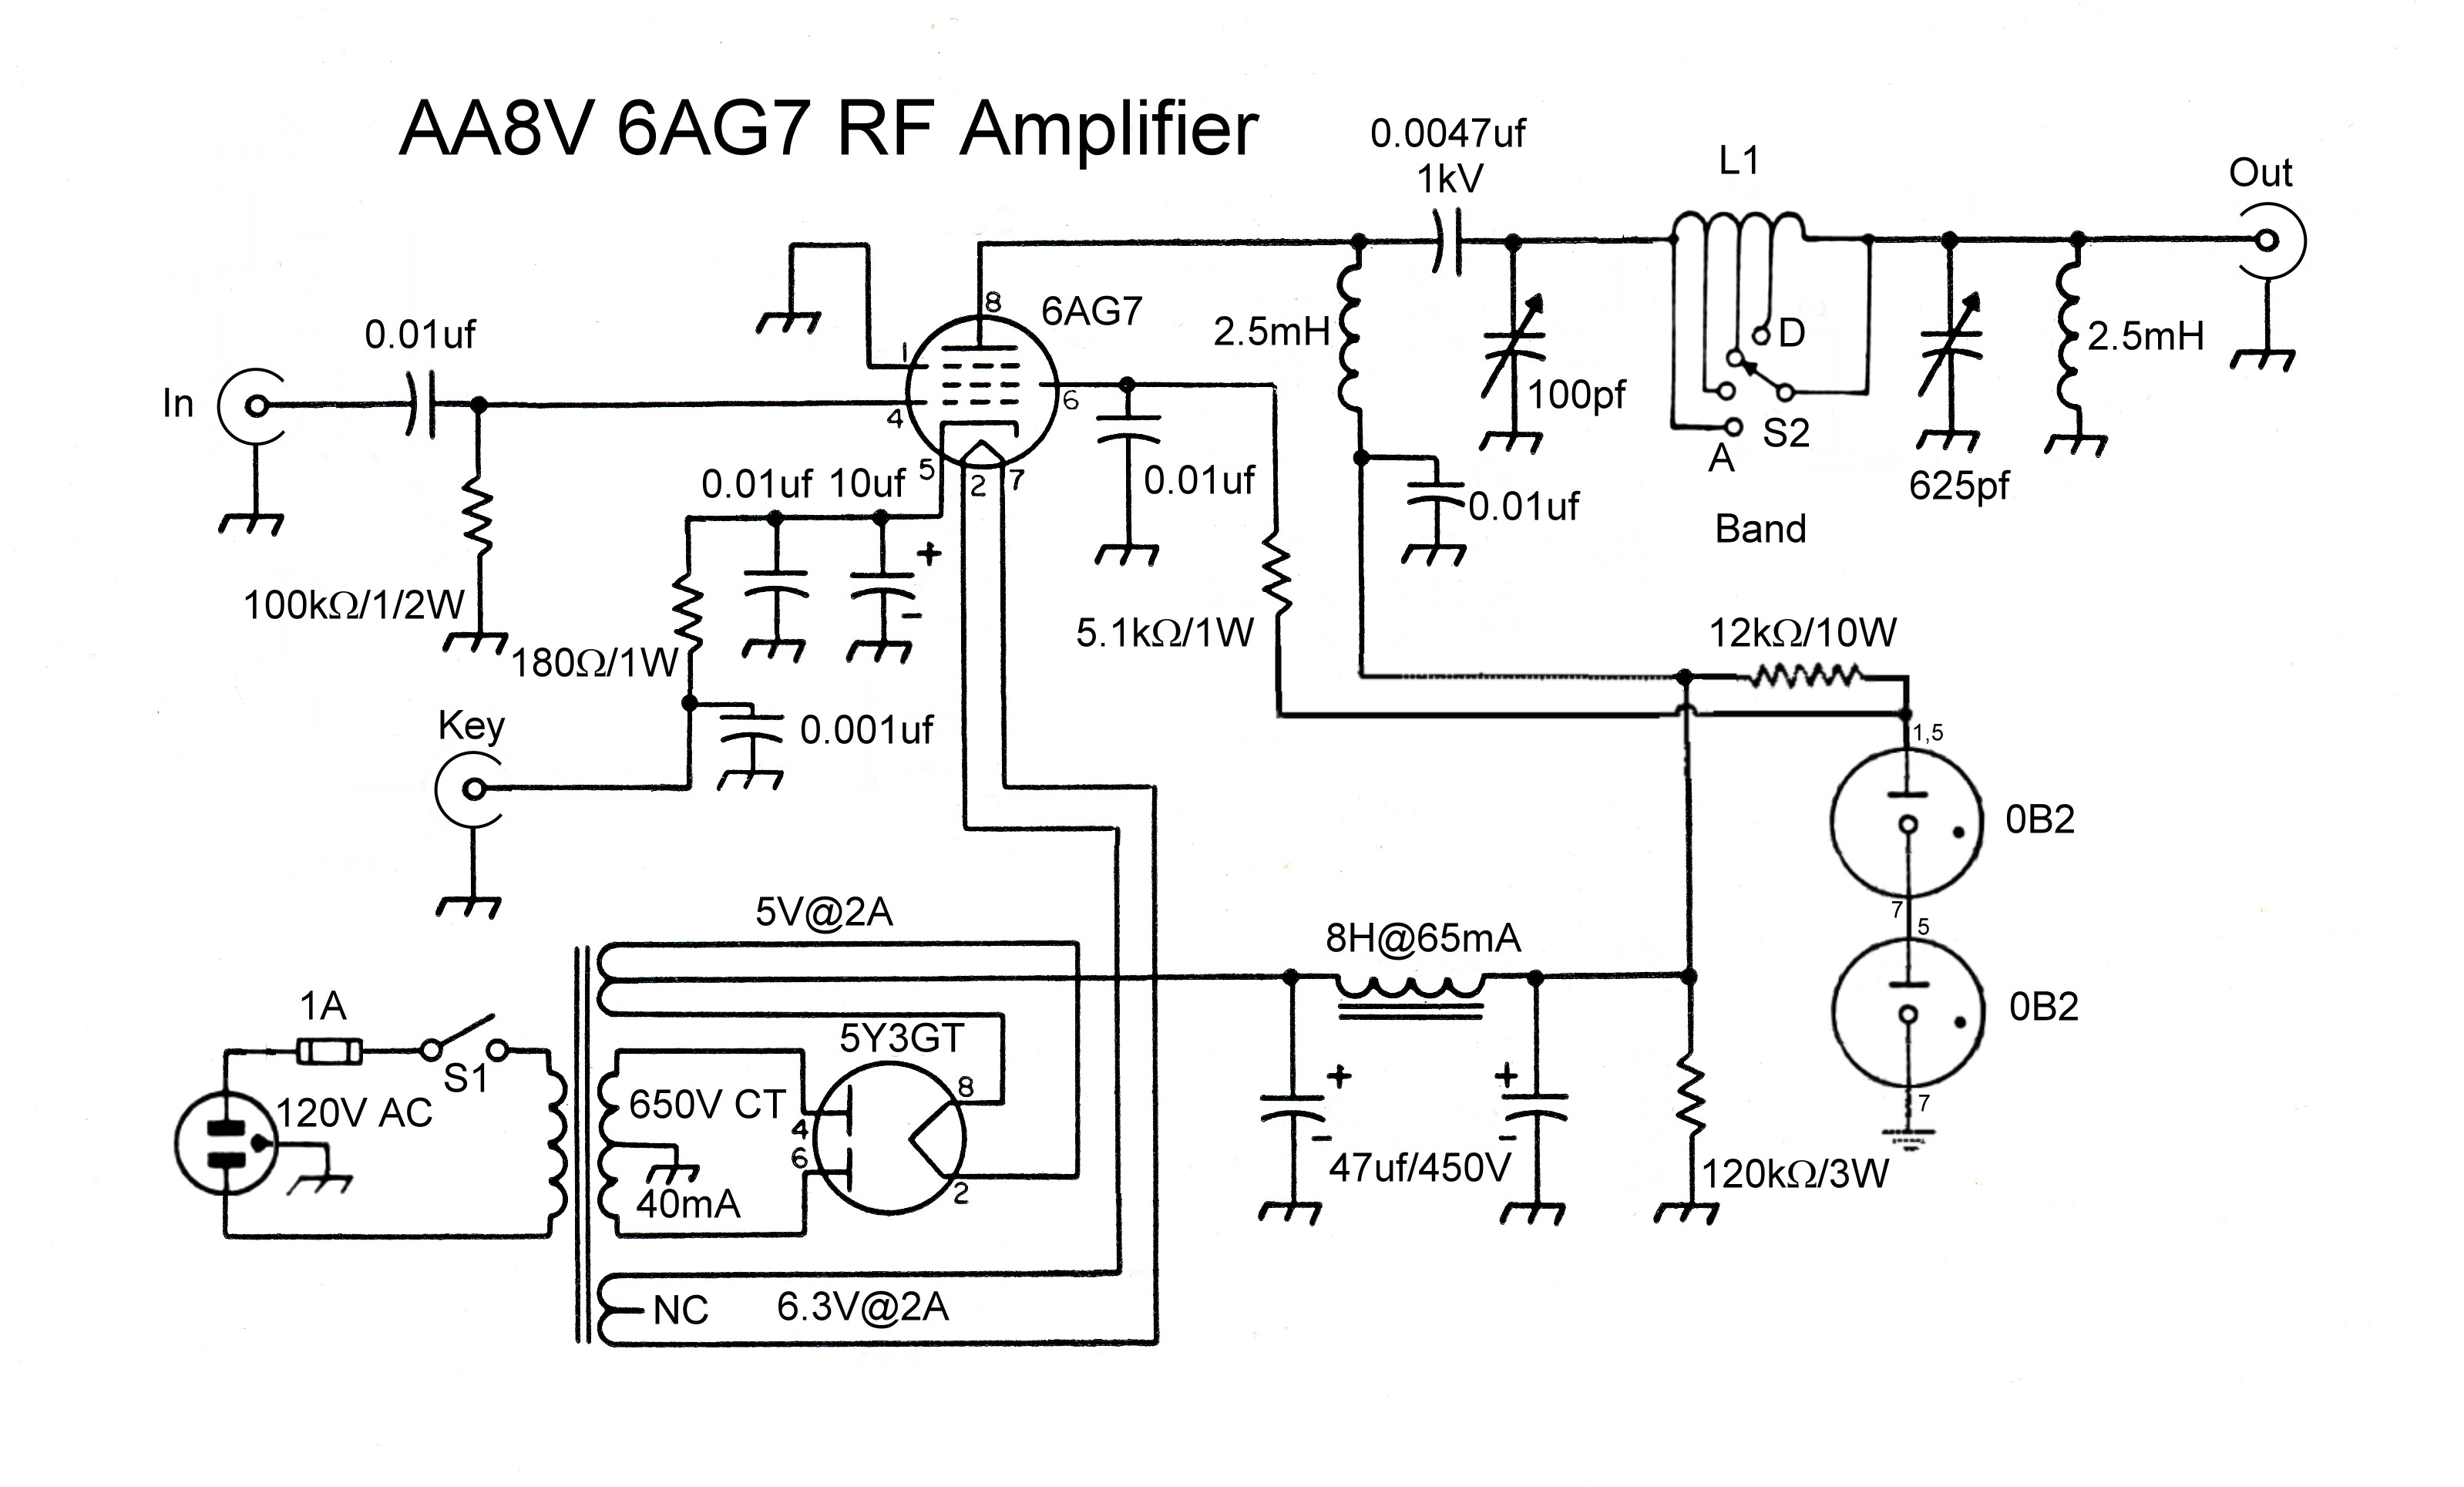 the aa8v 6ag7 amplifier - schematic diagrams and circuit ... 12v power schematic wiring diagram #4